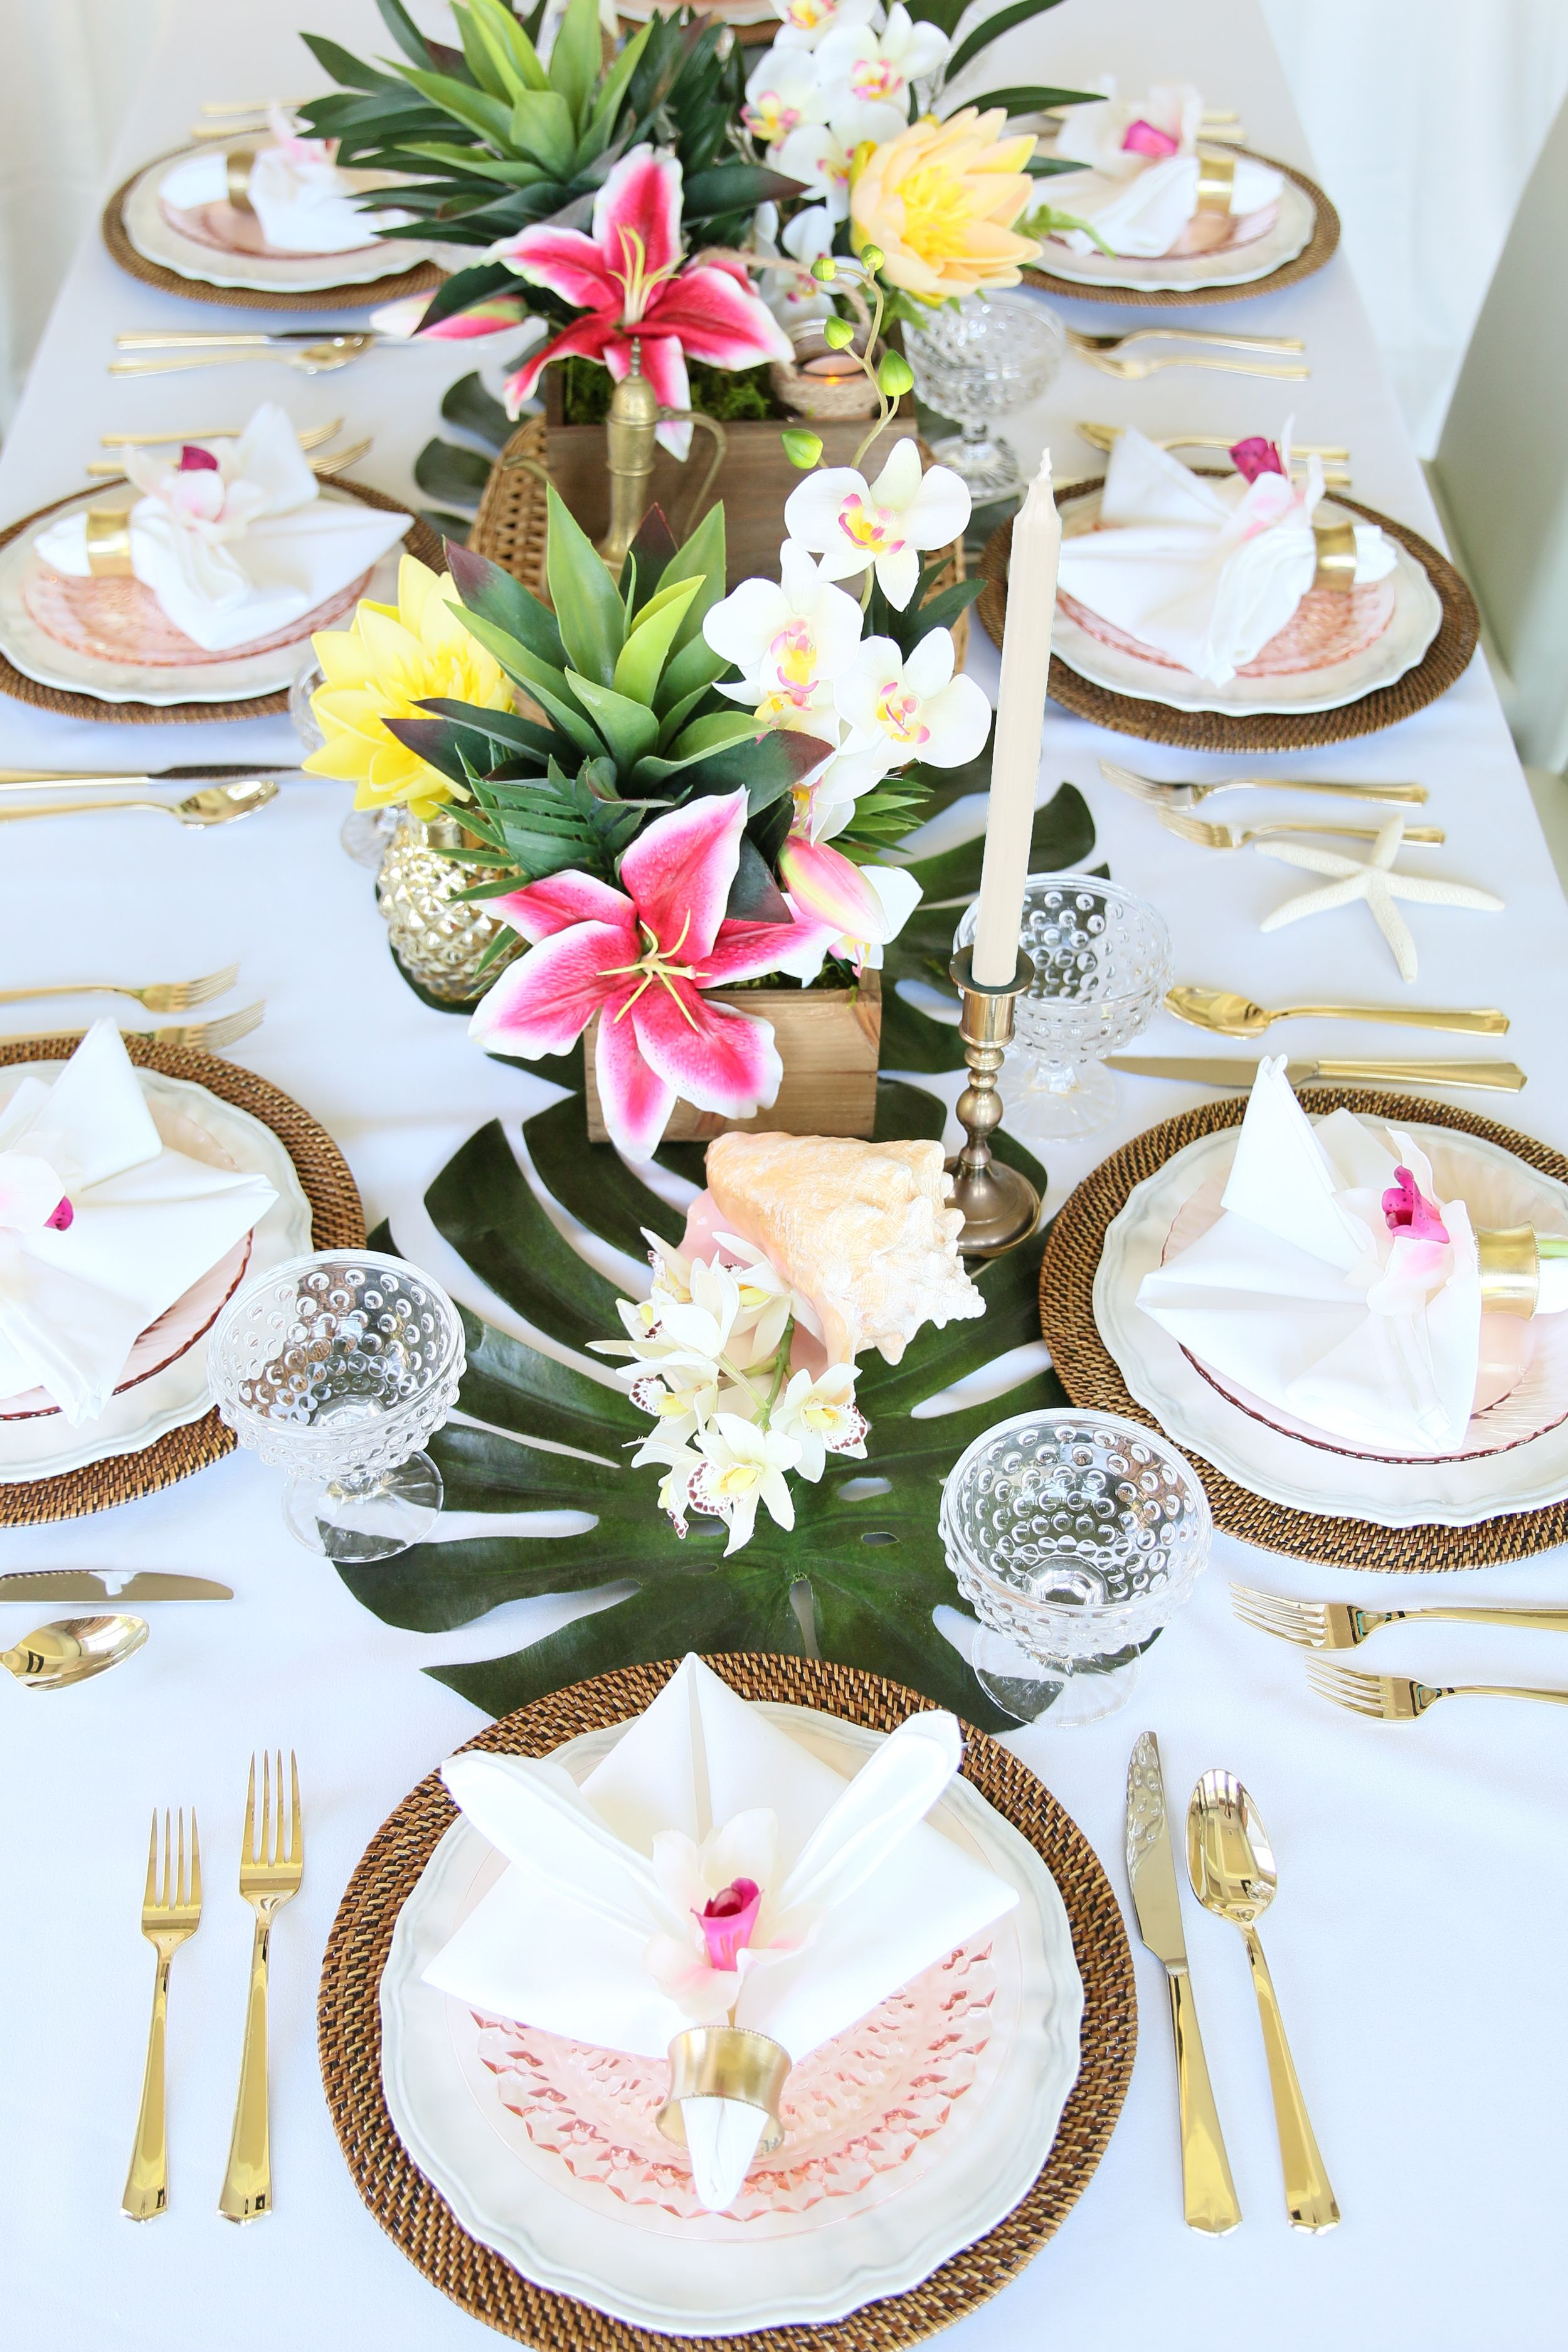 Palm leaves, tropical flowers, golden pineapples, wicker, seashells, & golden accents - Paradise has never been so close! Perfect for a baby shower, bridal shower, or birthday celebration!